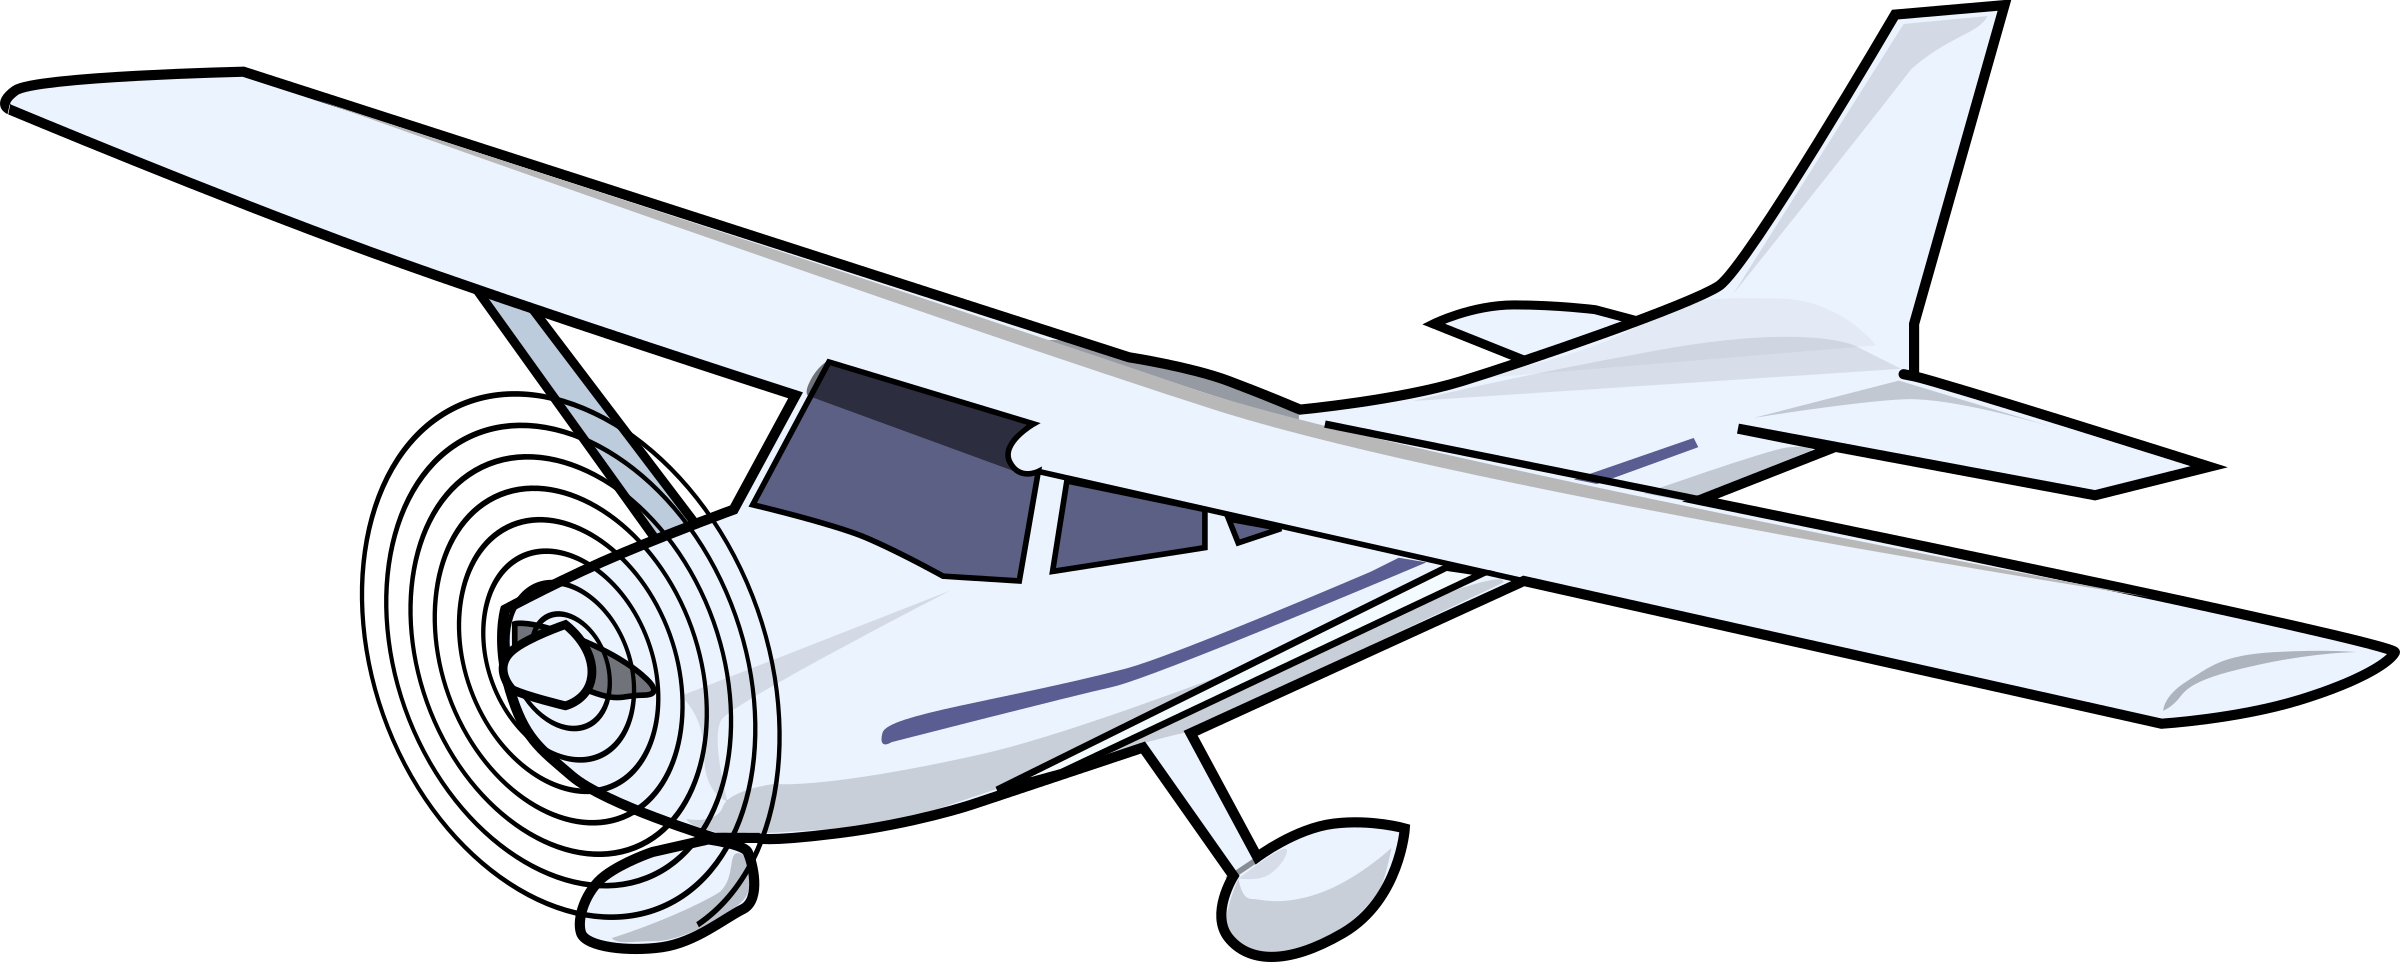 Plane clipart air craft. Aircraft airplane wing of